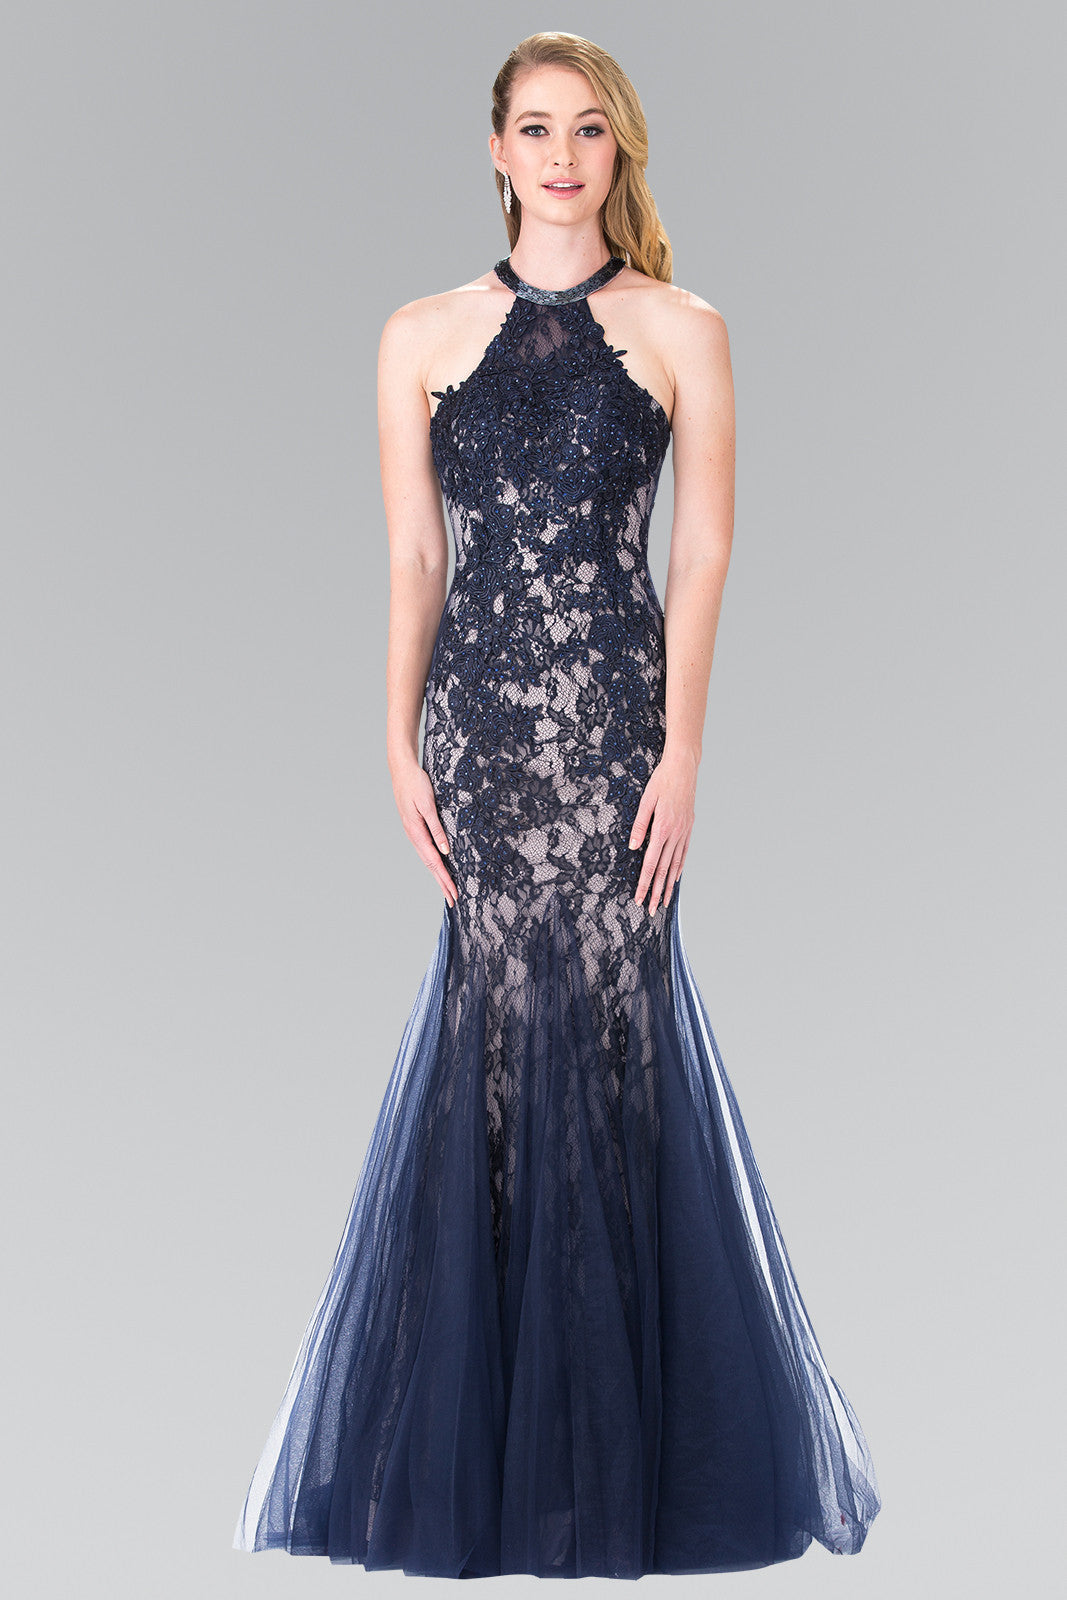 A Mermaid lace tulle prom dress 103-gl2243 – Simply Fab Dress